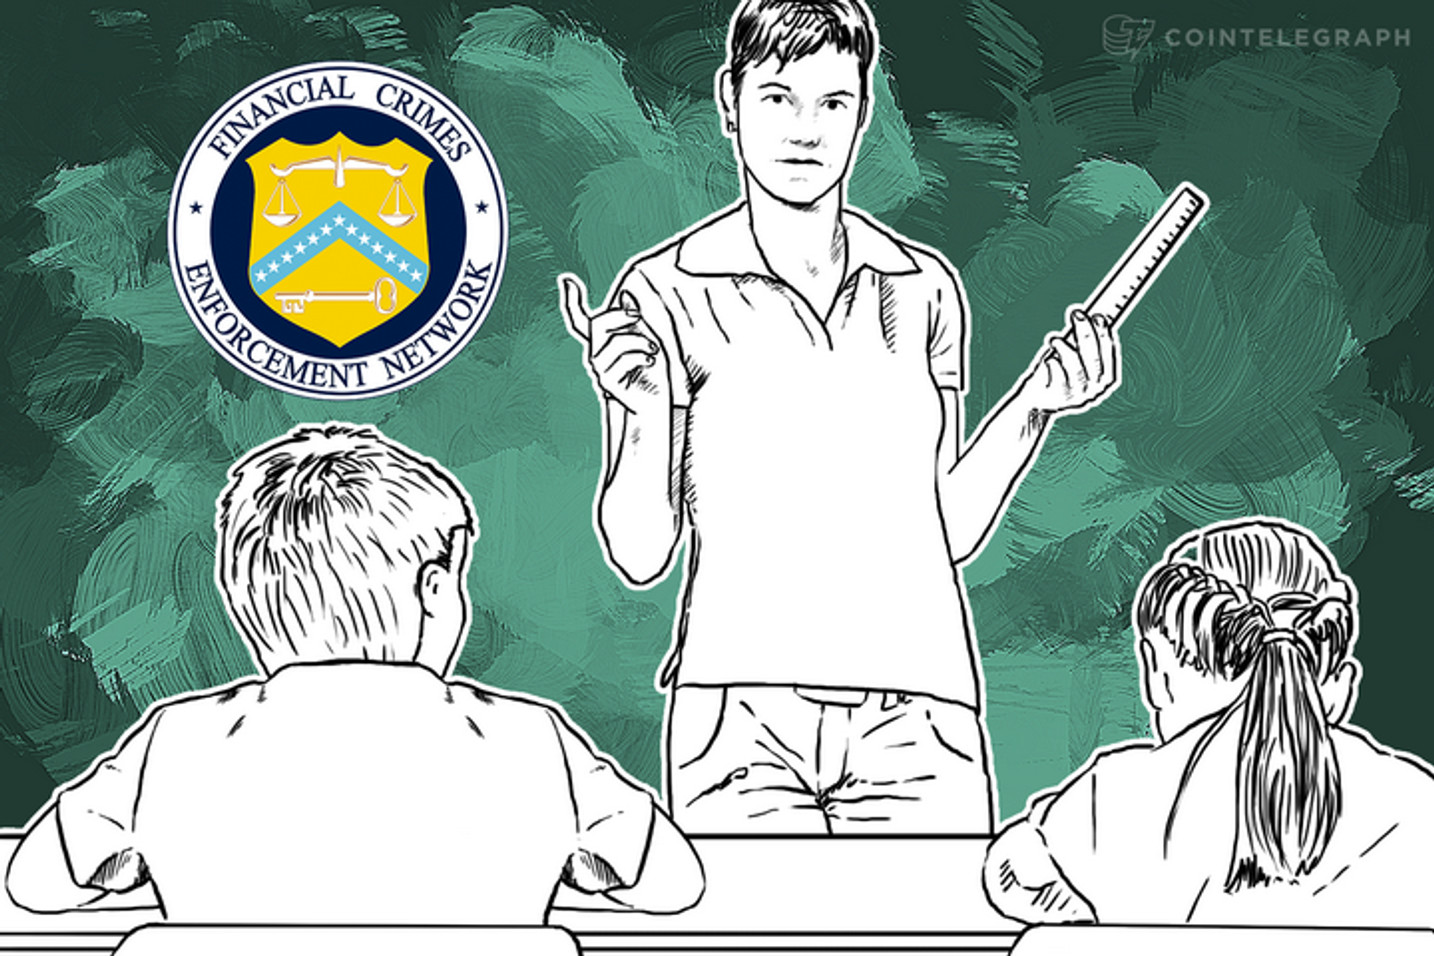 FinCEN Examinations of Digital Currency Businesses 'Will Drive Innovation Overseas'